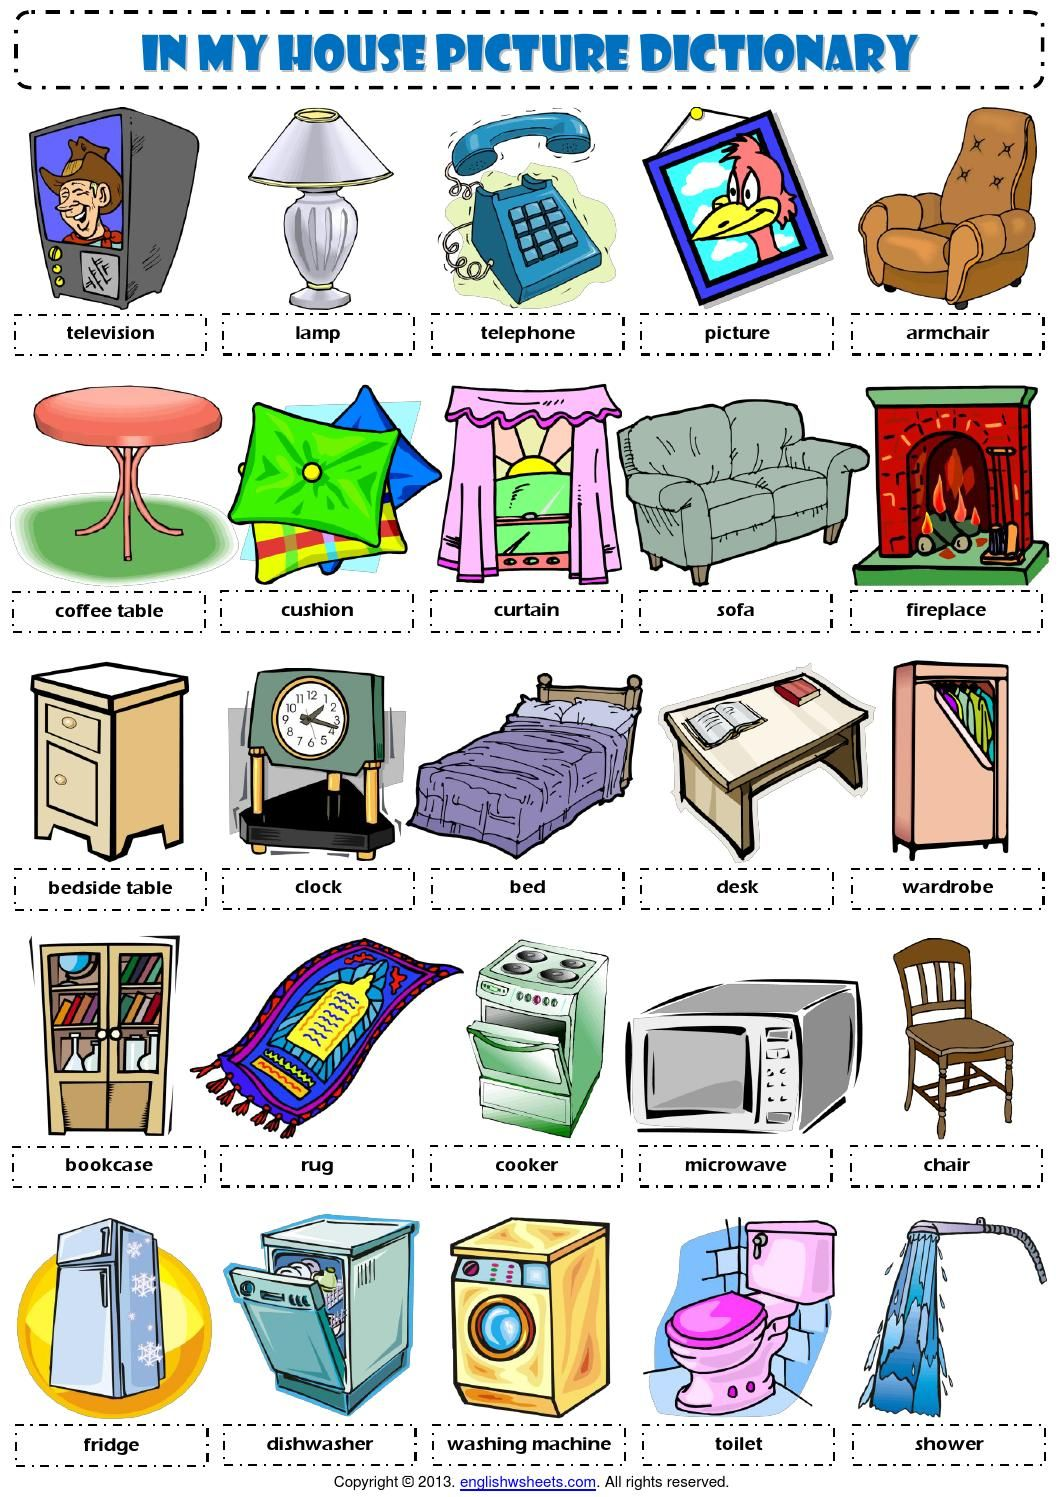 English Vocabulary In My House Furniture English English Vocabulary And Plays